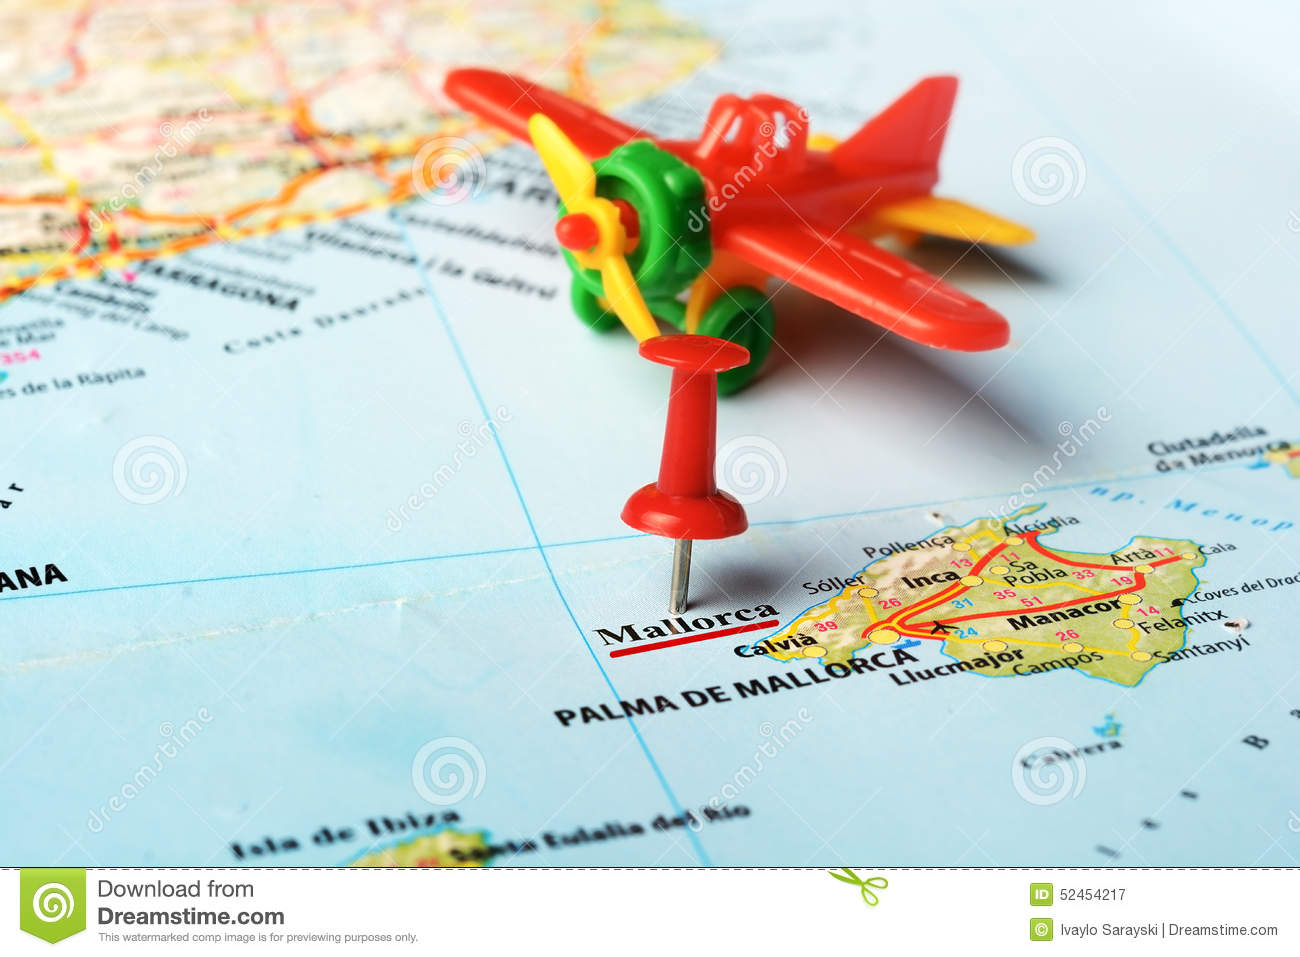 Map Of Spain Majorca.Mallorca Island Spain Map Airplane Stock Image Image Of Island